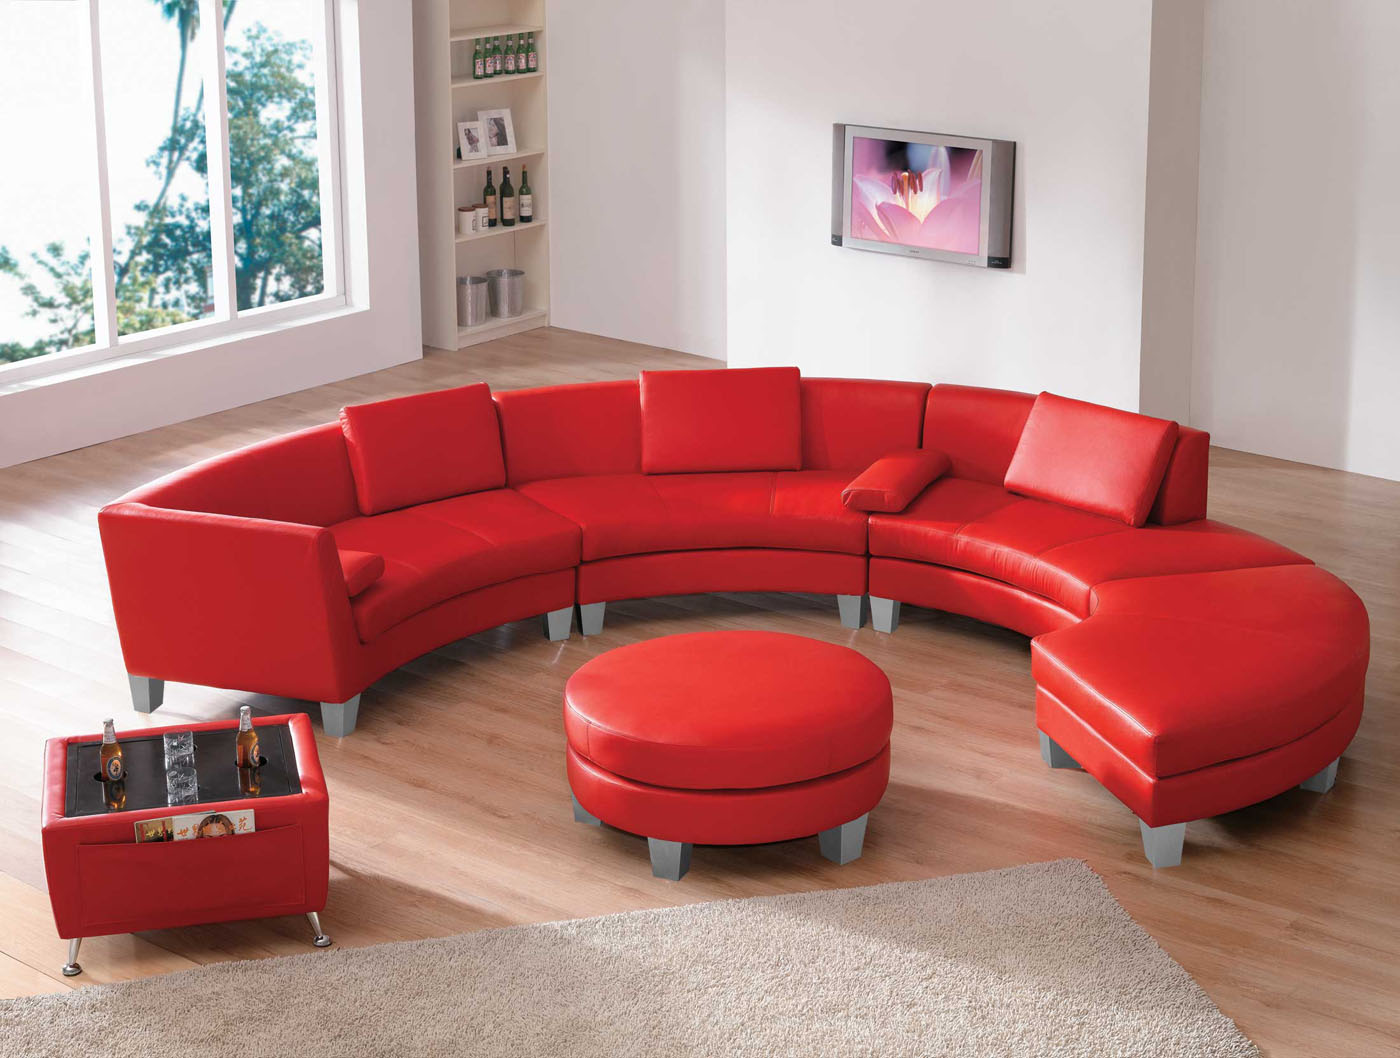 Contemporary-Living-Room-Sets-with-U-Shaped-Red-Sofa-Living-Room-near-Round-Shaped-Red-Leather-Coffee-Table-Ottoman-plus-Wooden-Flooring-also-White-Wall-Paint-and-Glass-Windows-Set